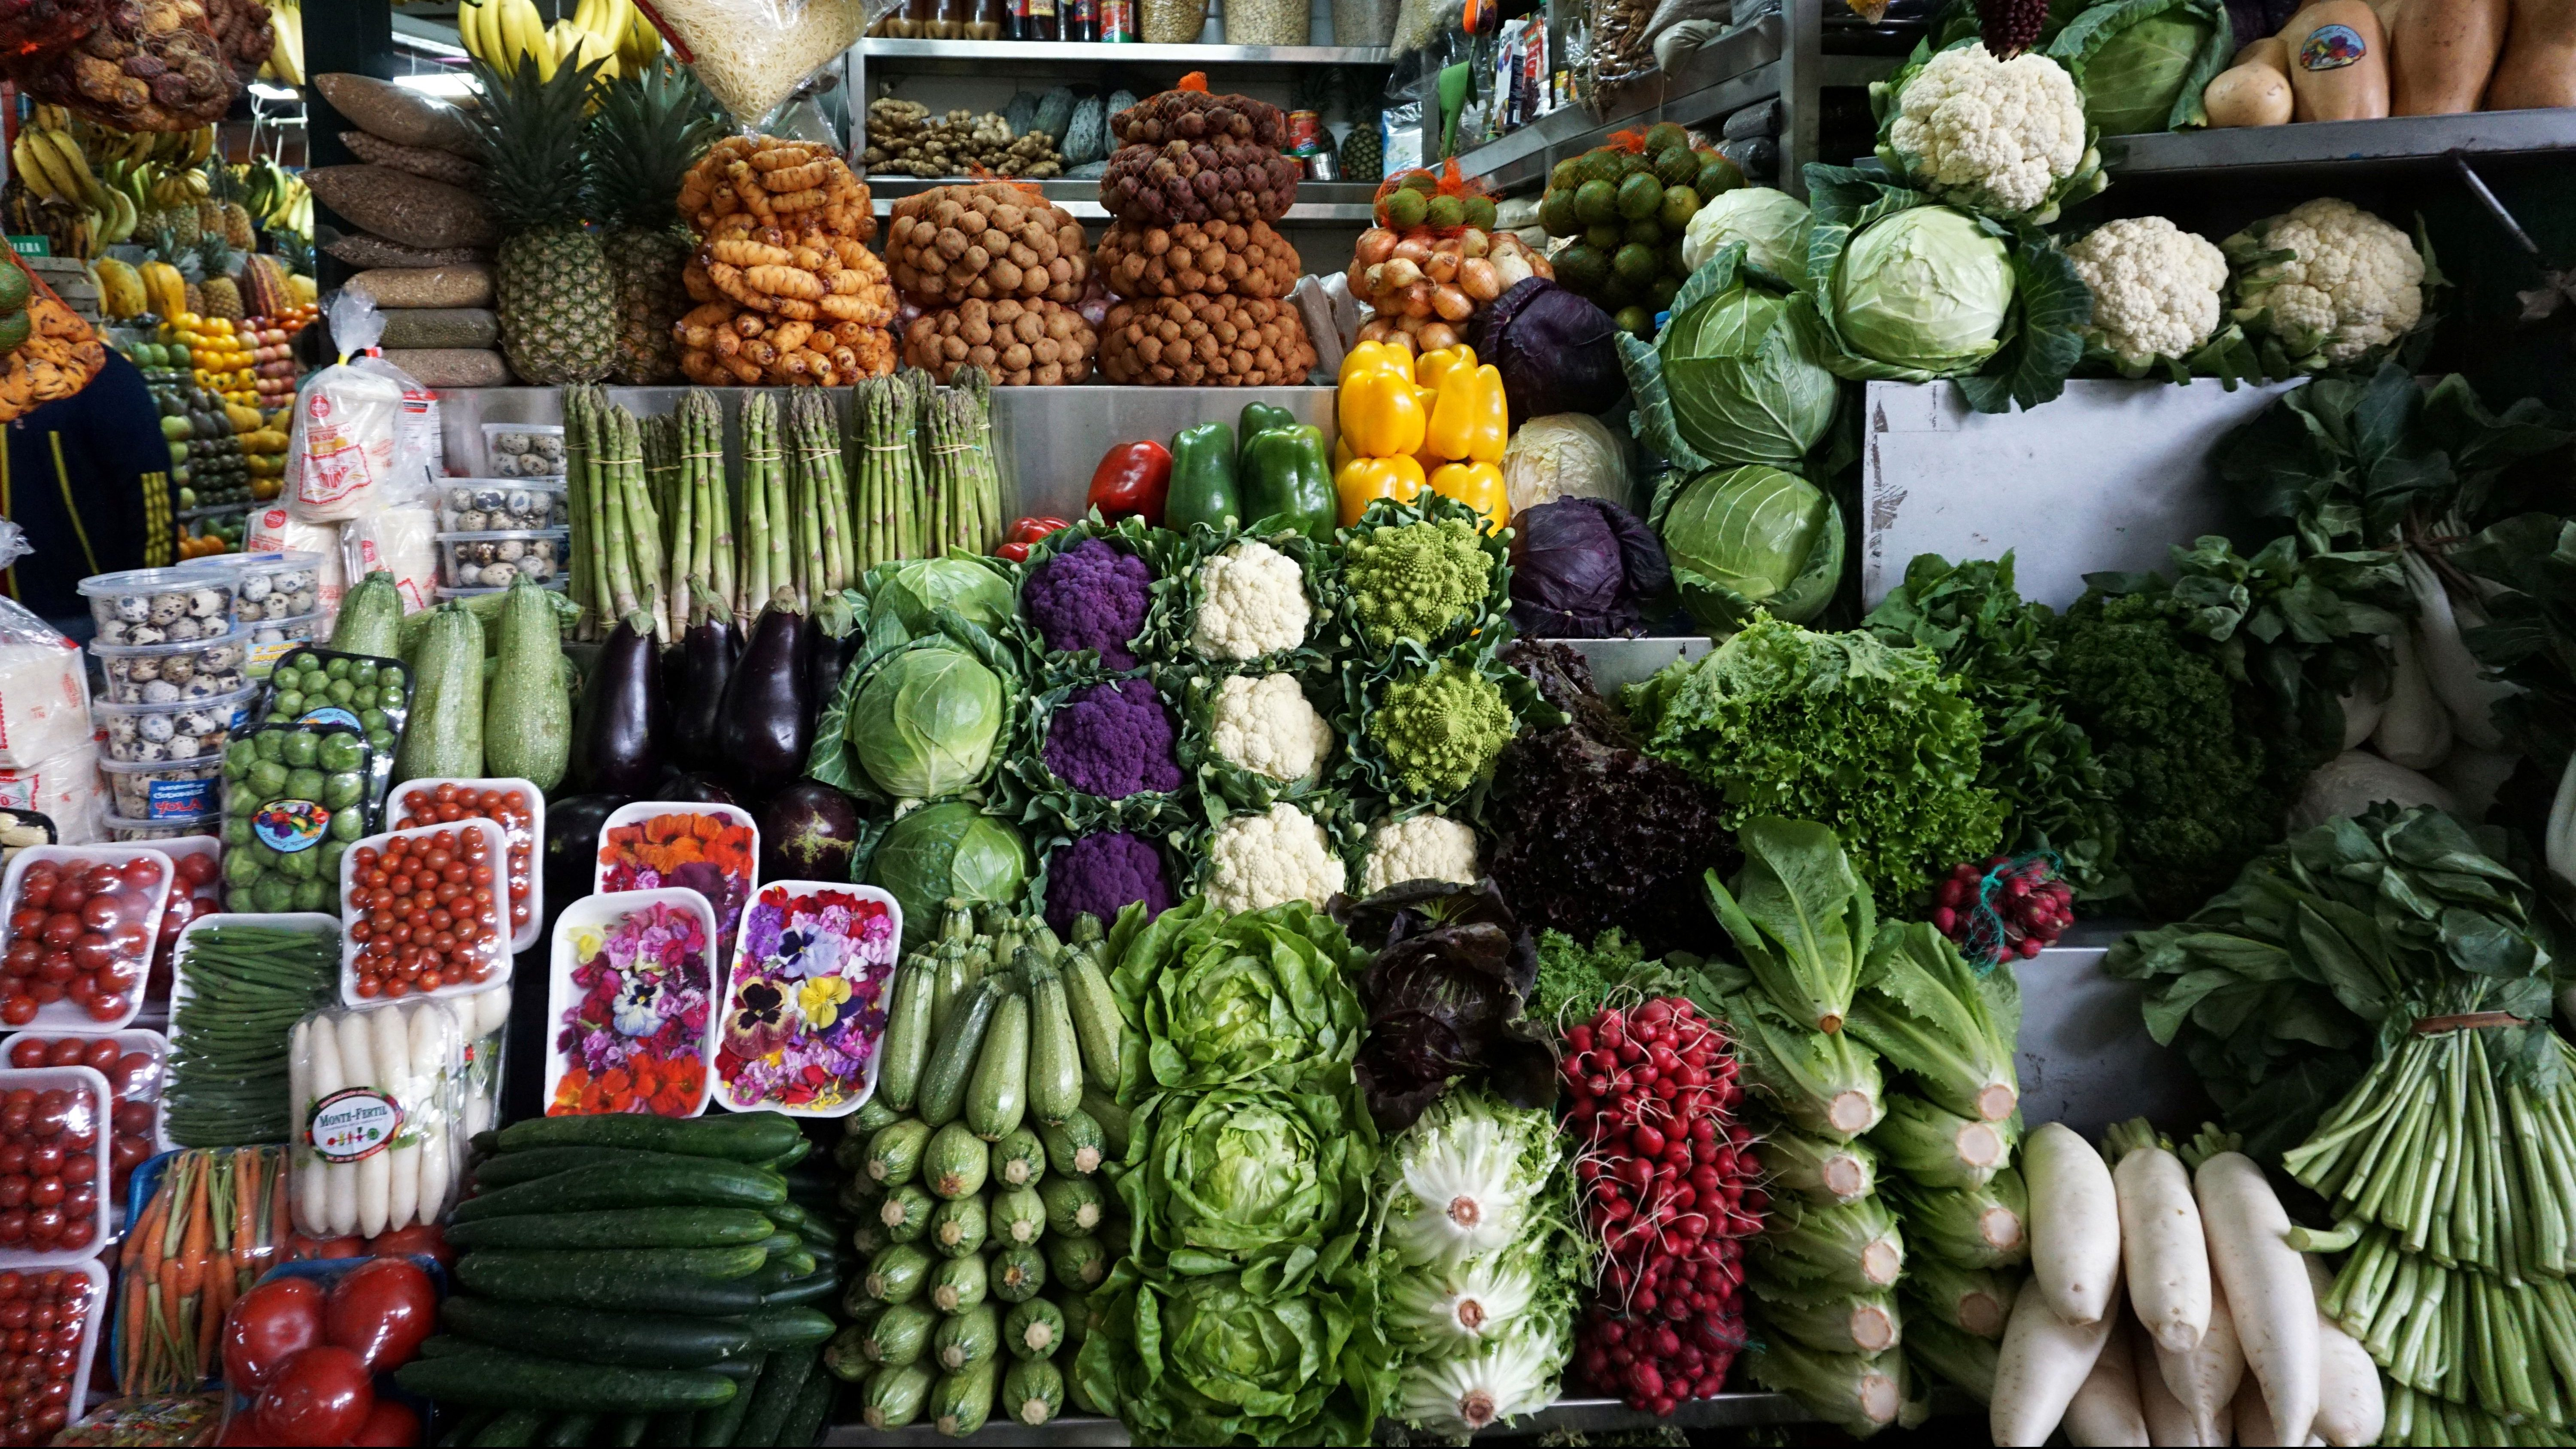 Vegetables are displayed for sale at a stand at Surquillo market in Lim